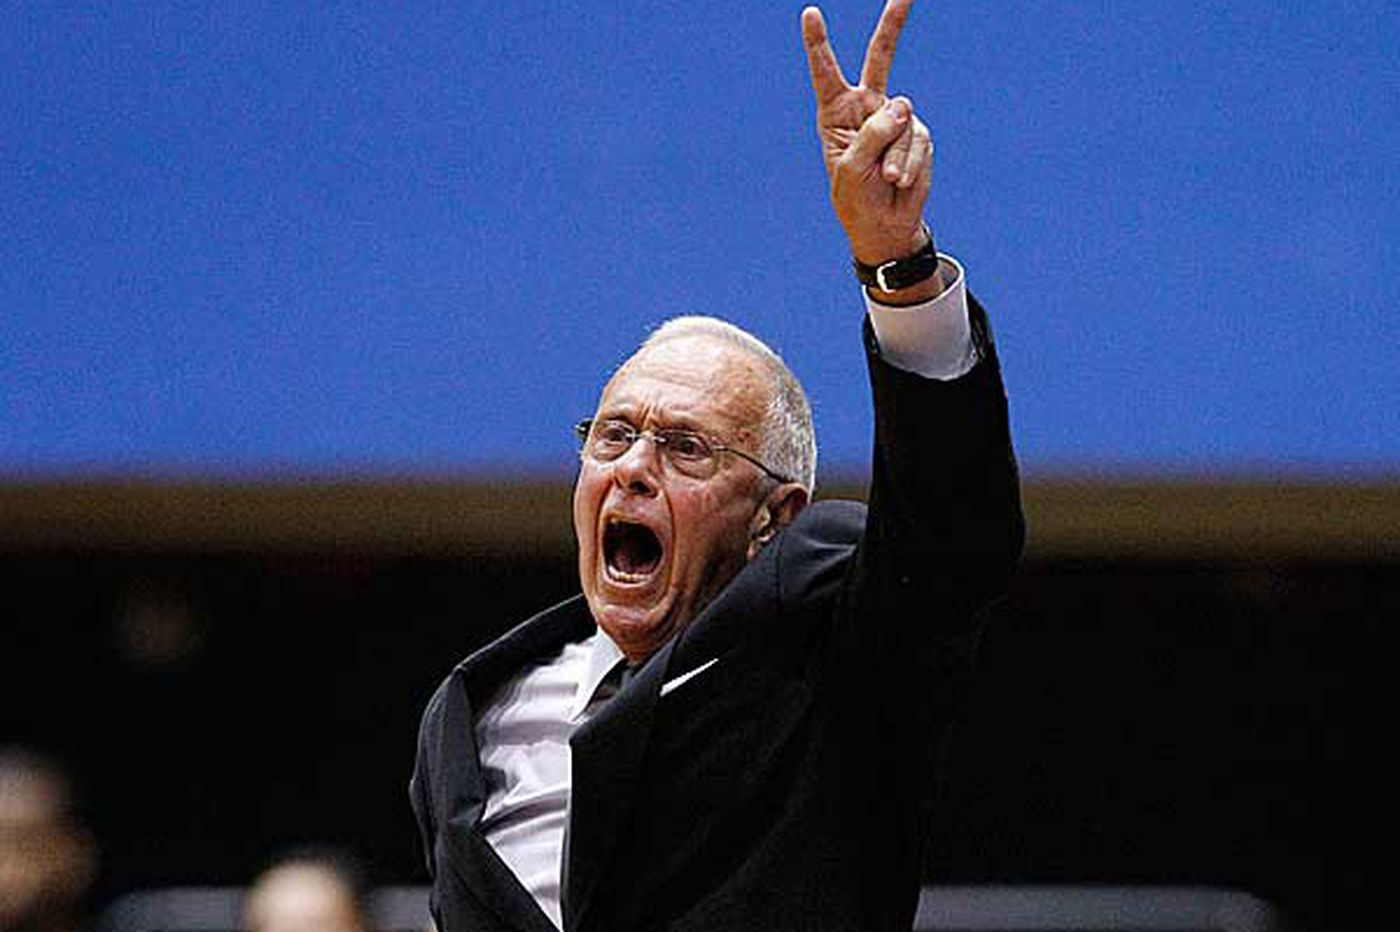 Larry Brown doing life's work